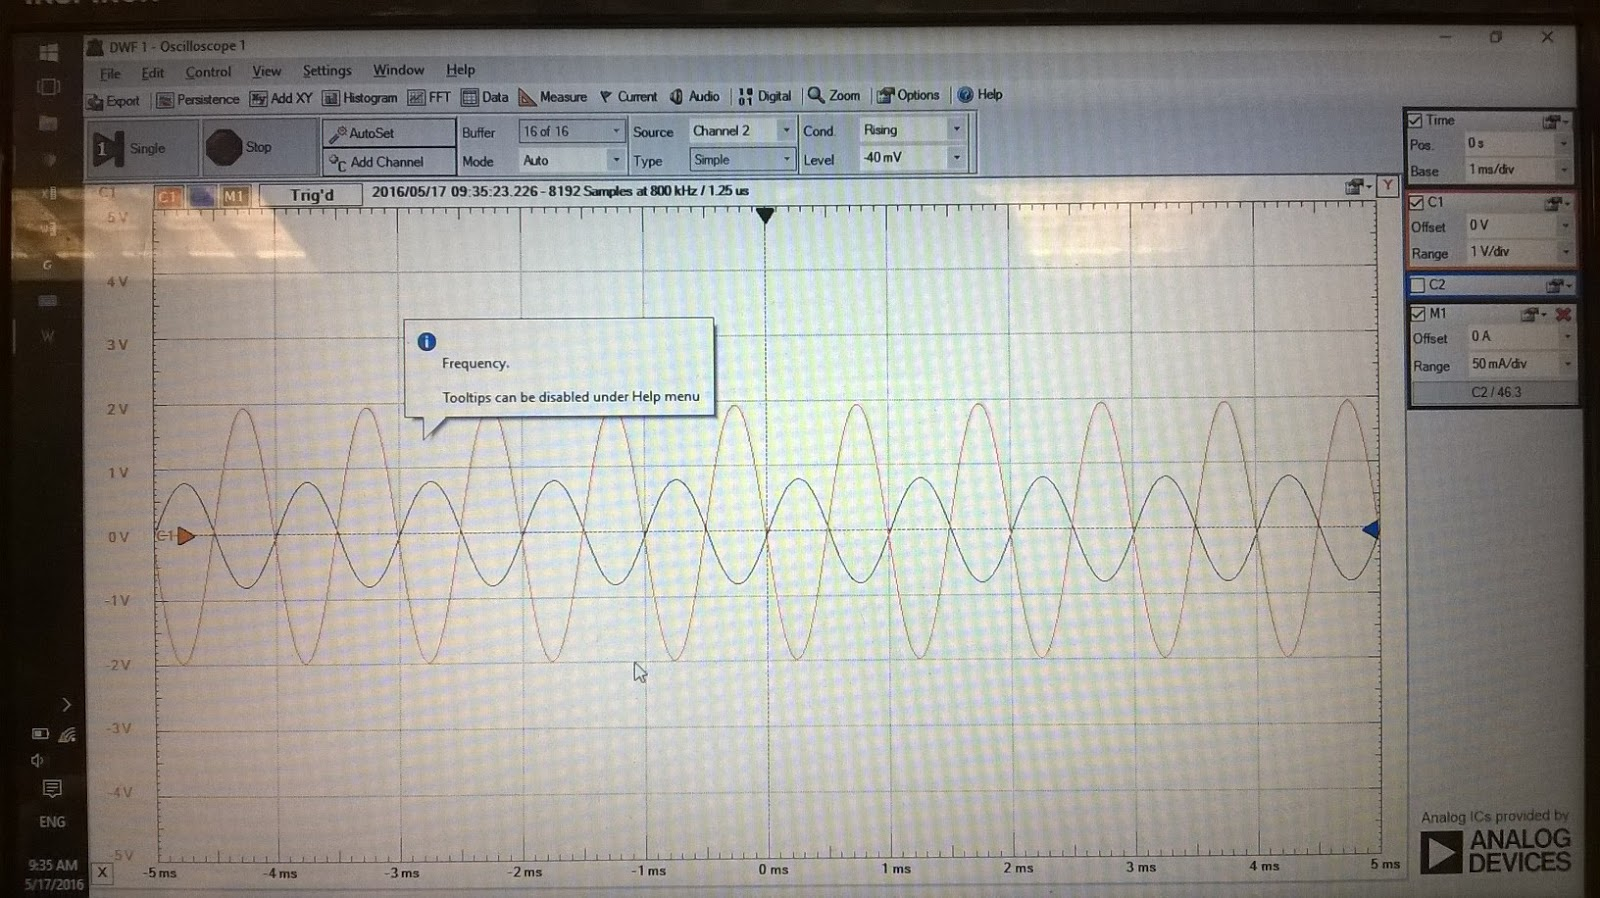 Engineering 44 Mroueintan Rlc Low Pass Filter Circuit For Pinterest Across Resistor In Phase With Current